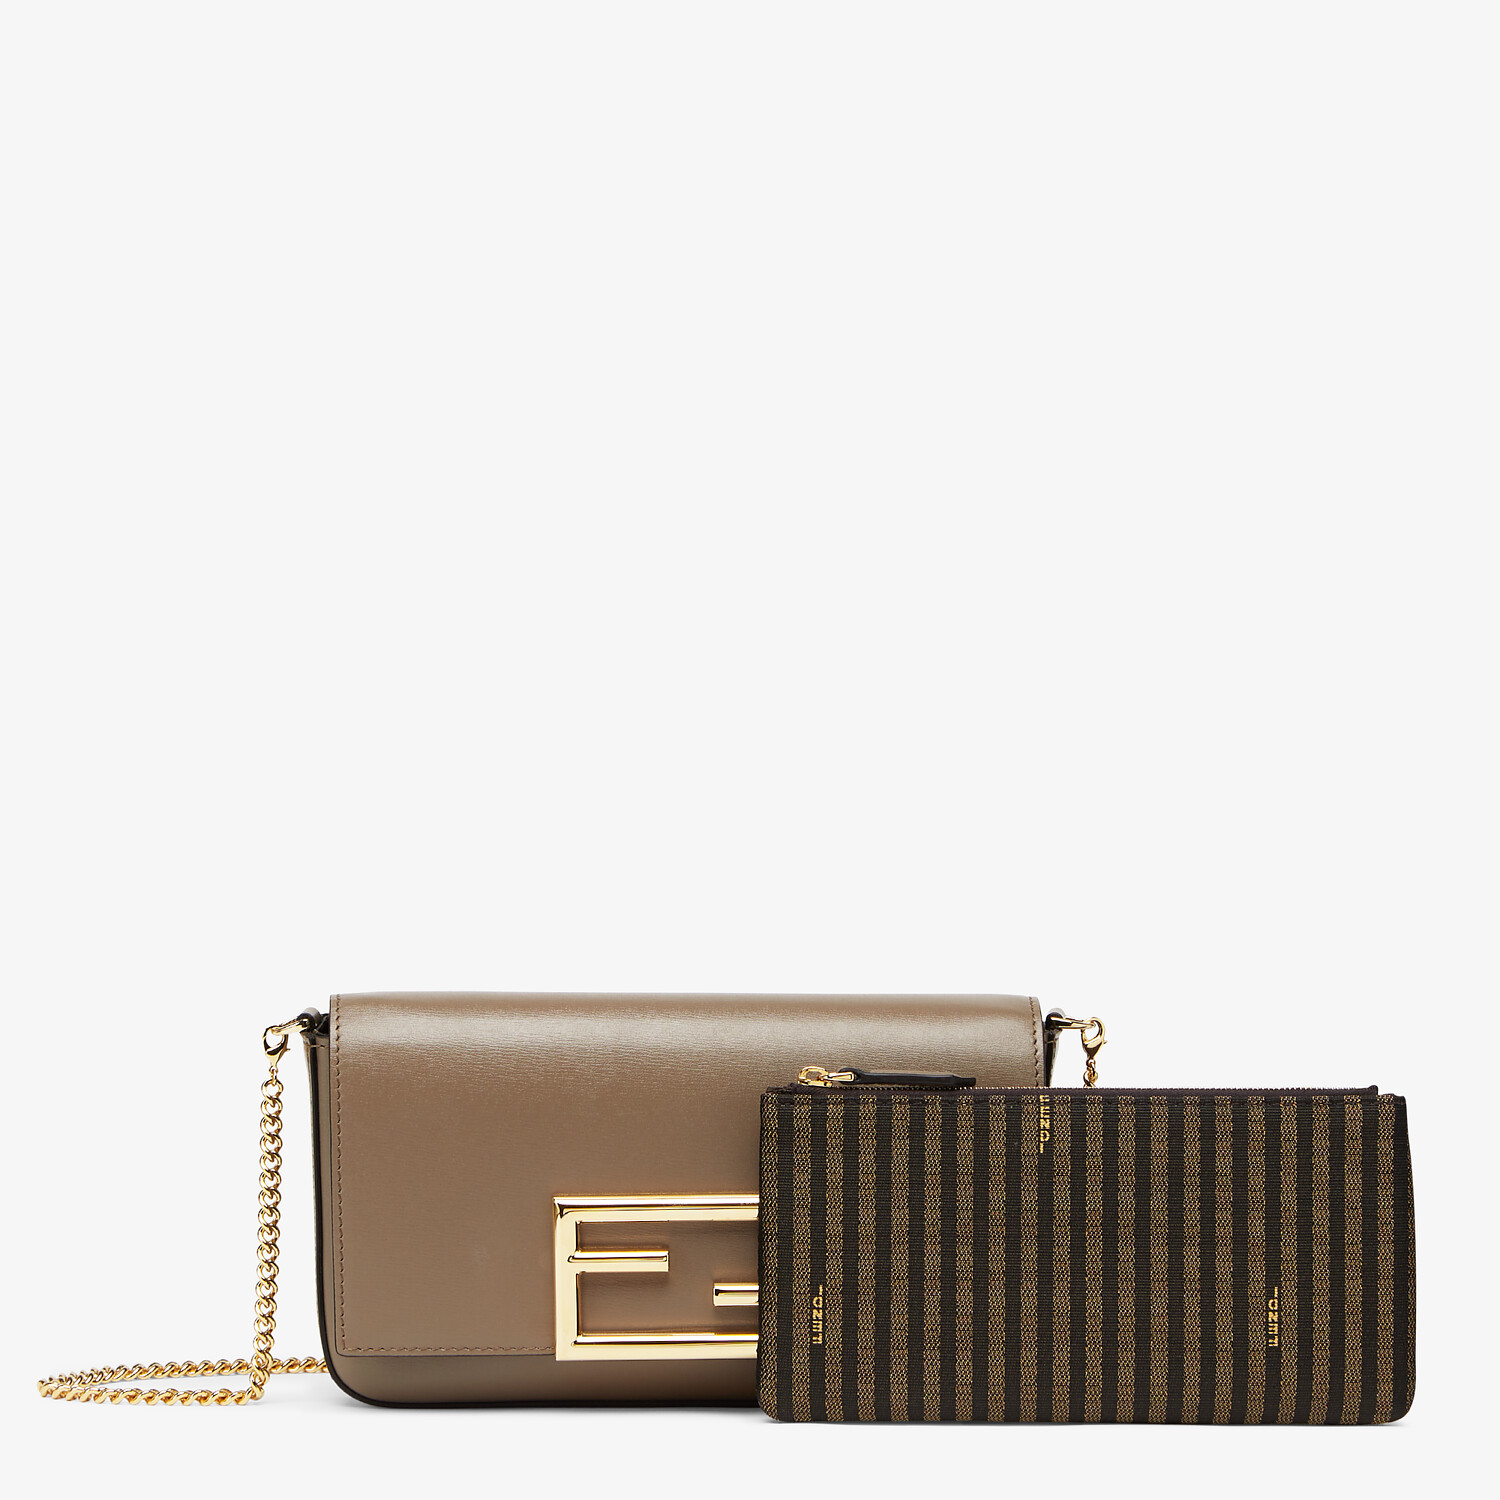 FENDI WALLET ON CHAIN WITH POUCHES - Grey leather mini-bag - view 2 detail